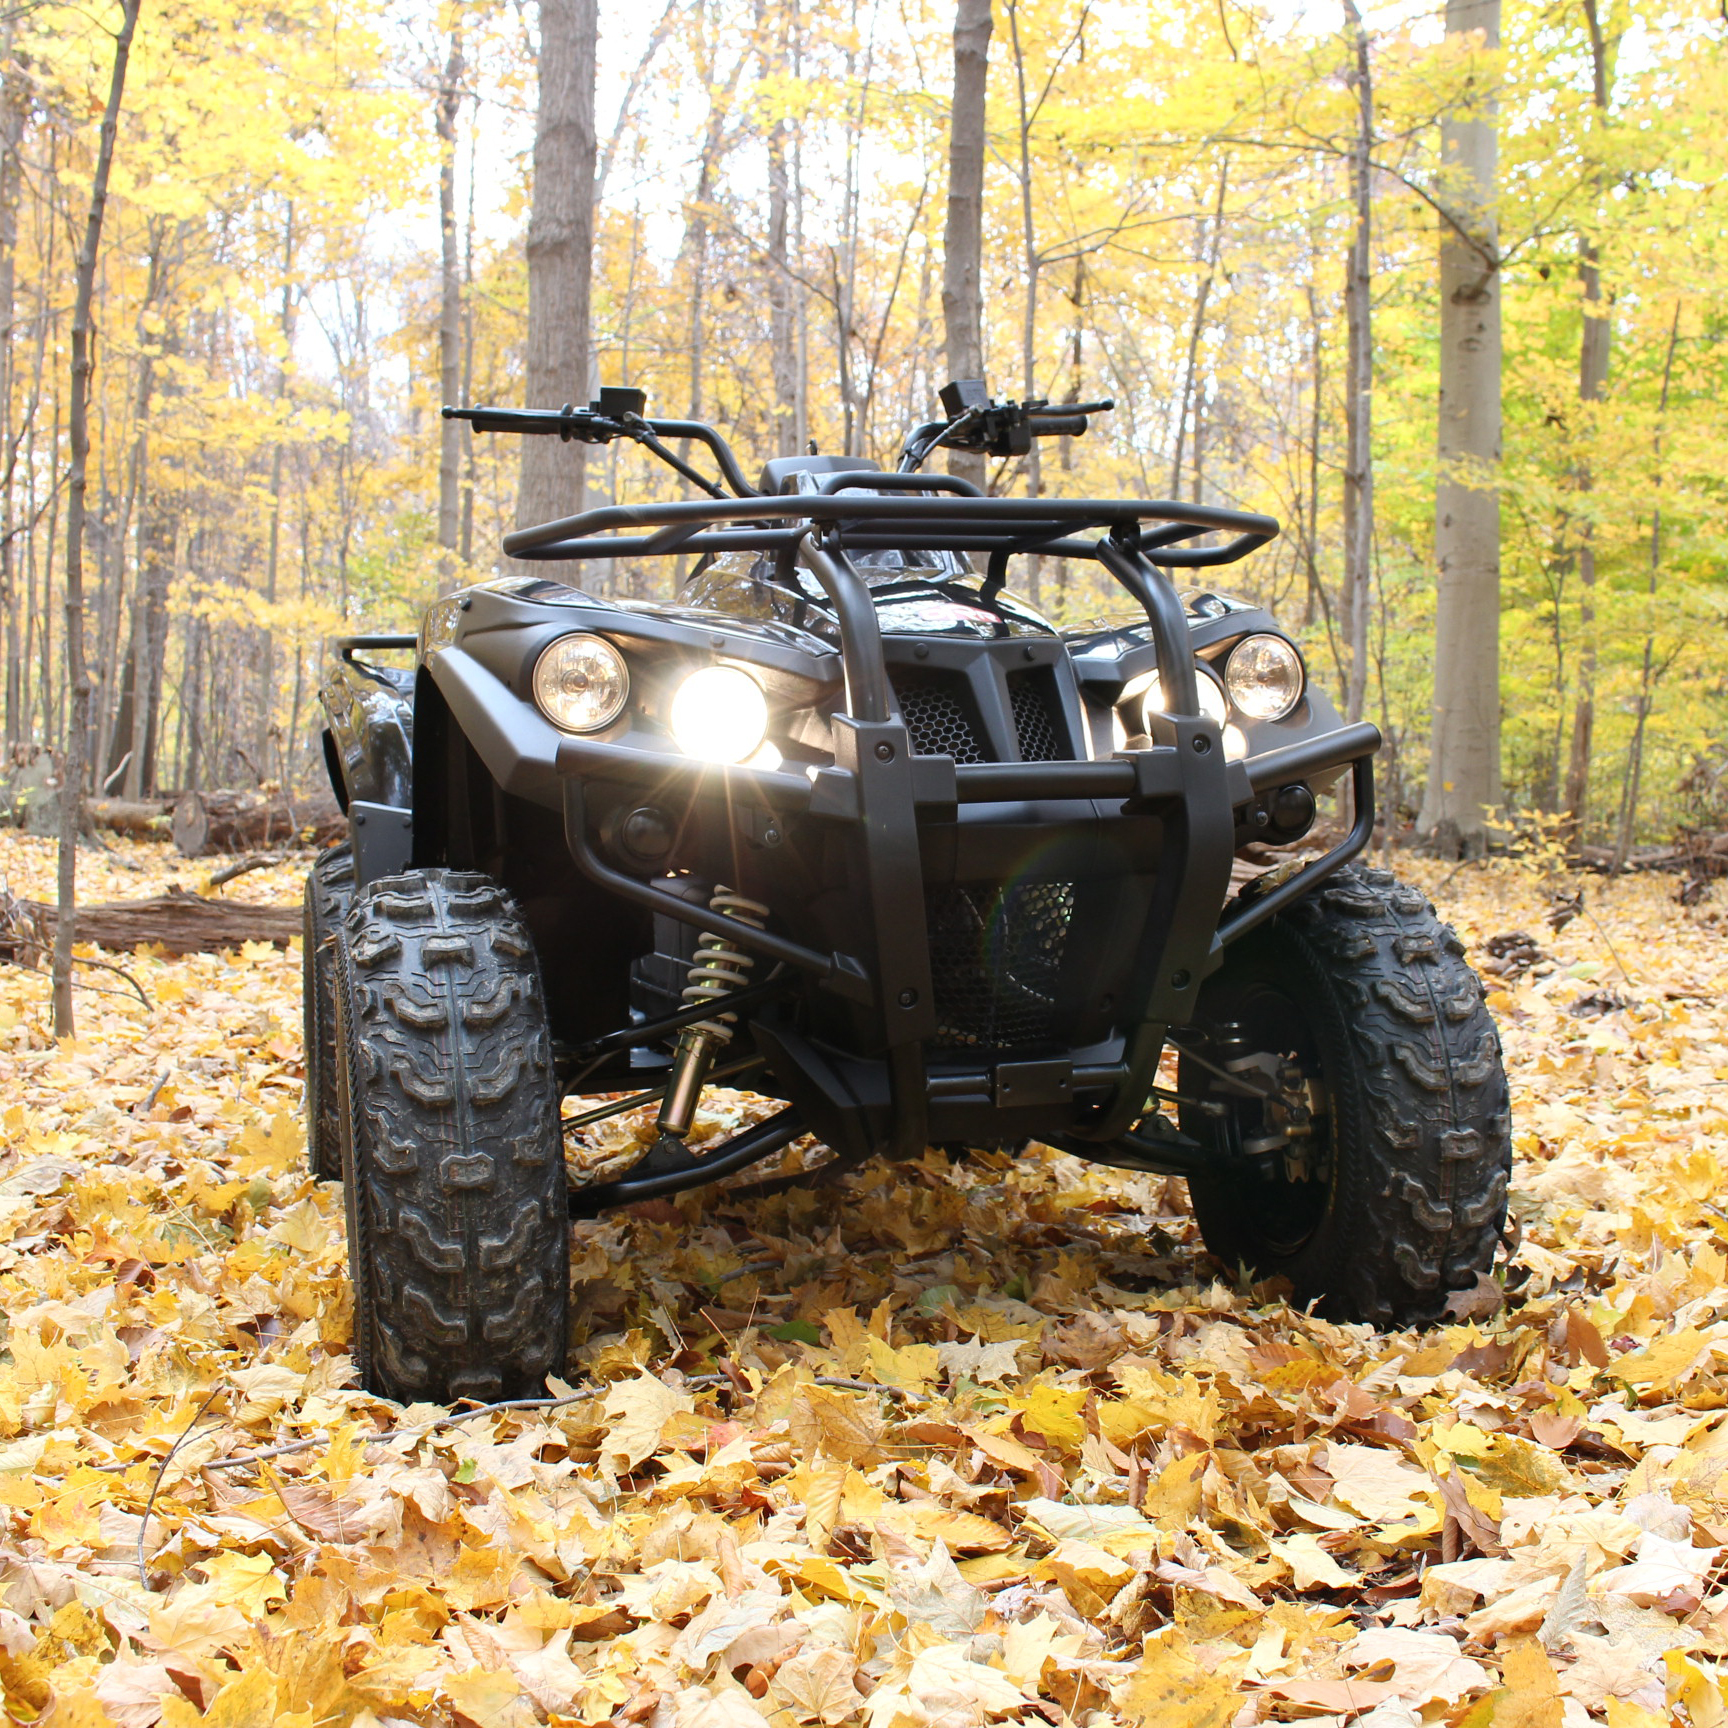 DRR USA Stealth Electric ATV silent in the woods in fall.jpg